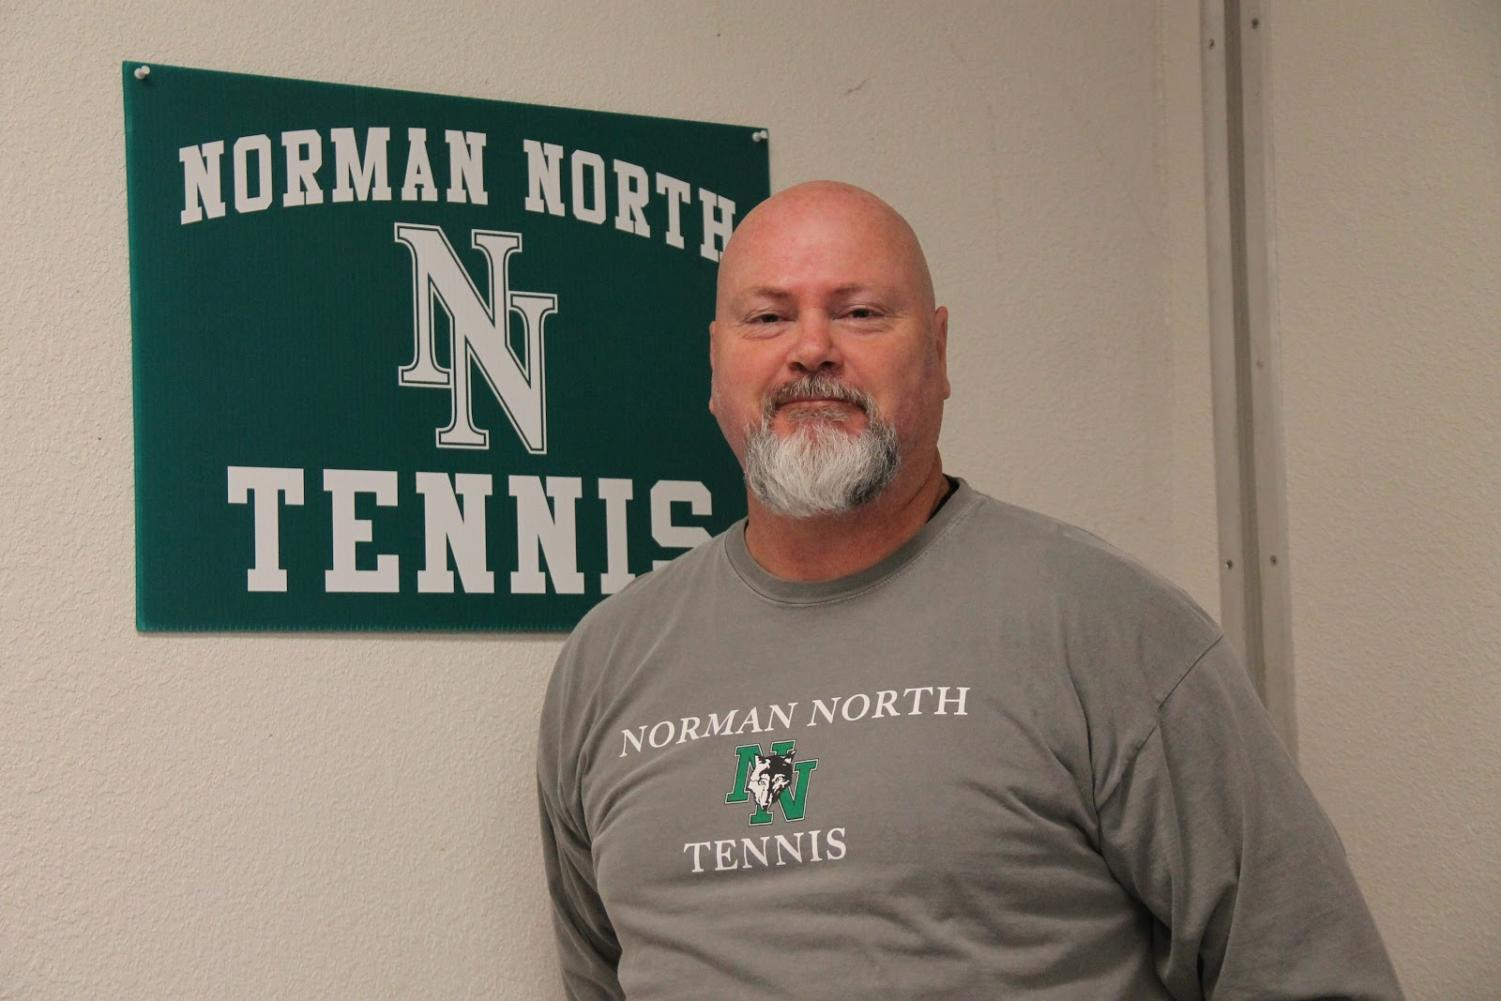 Mr. Corbett has given a lot to Norman North and has built a relationship with many students.